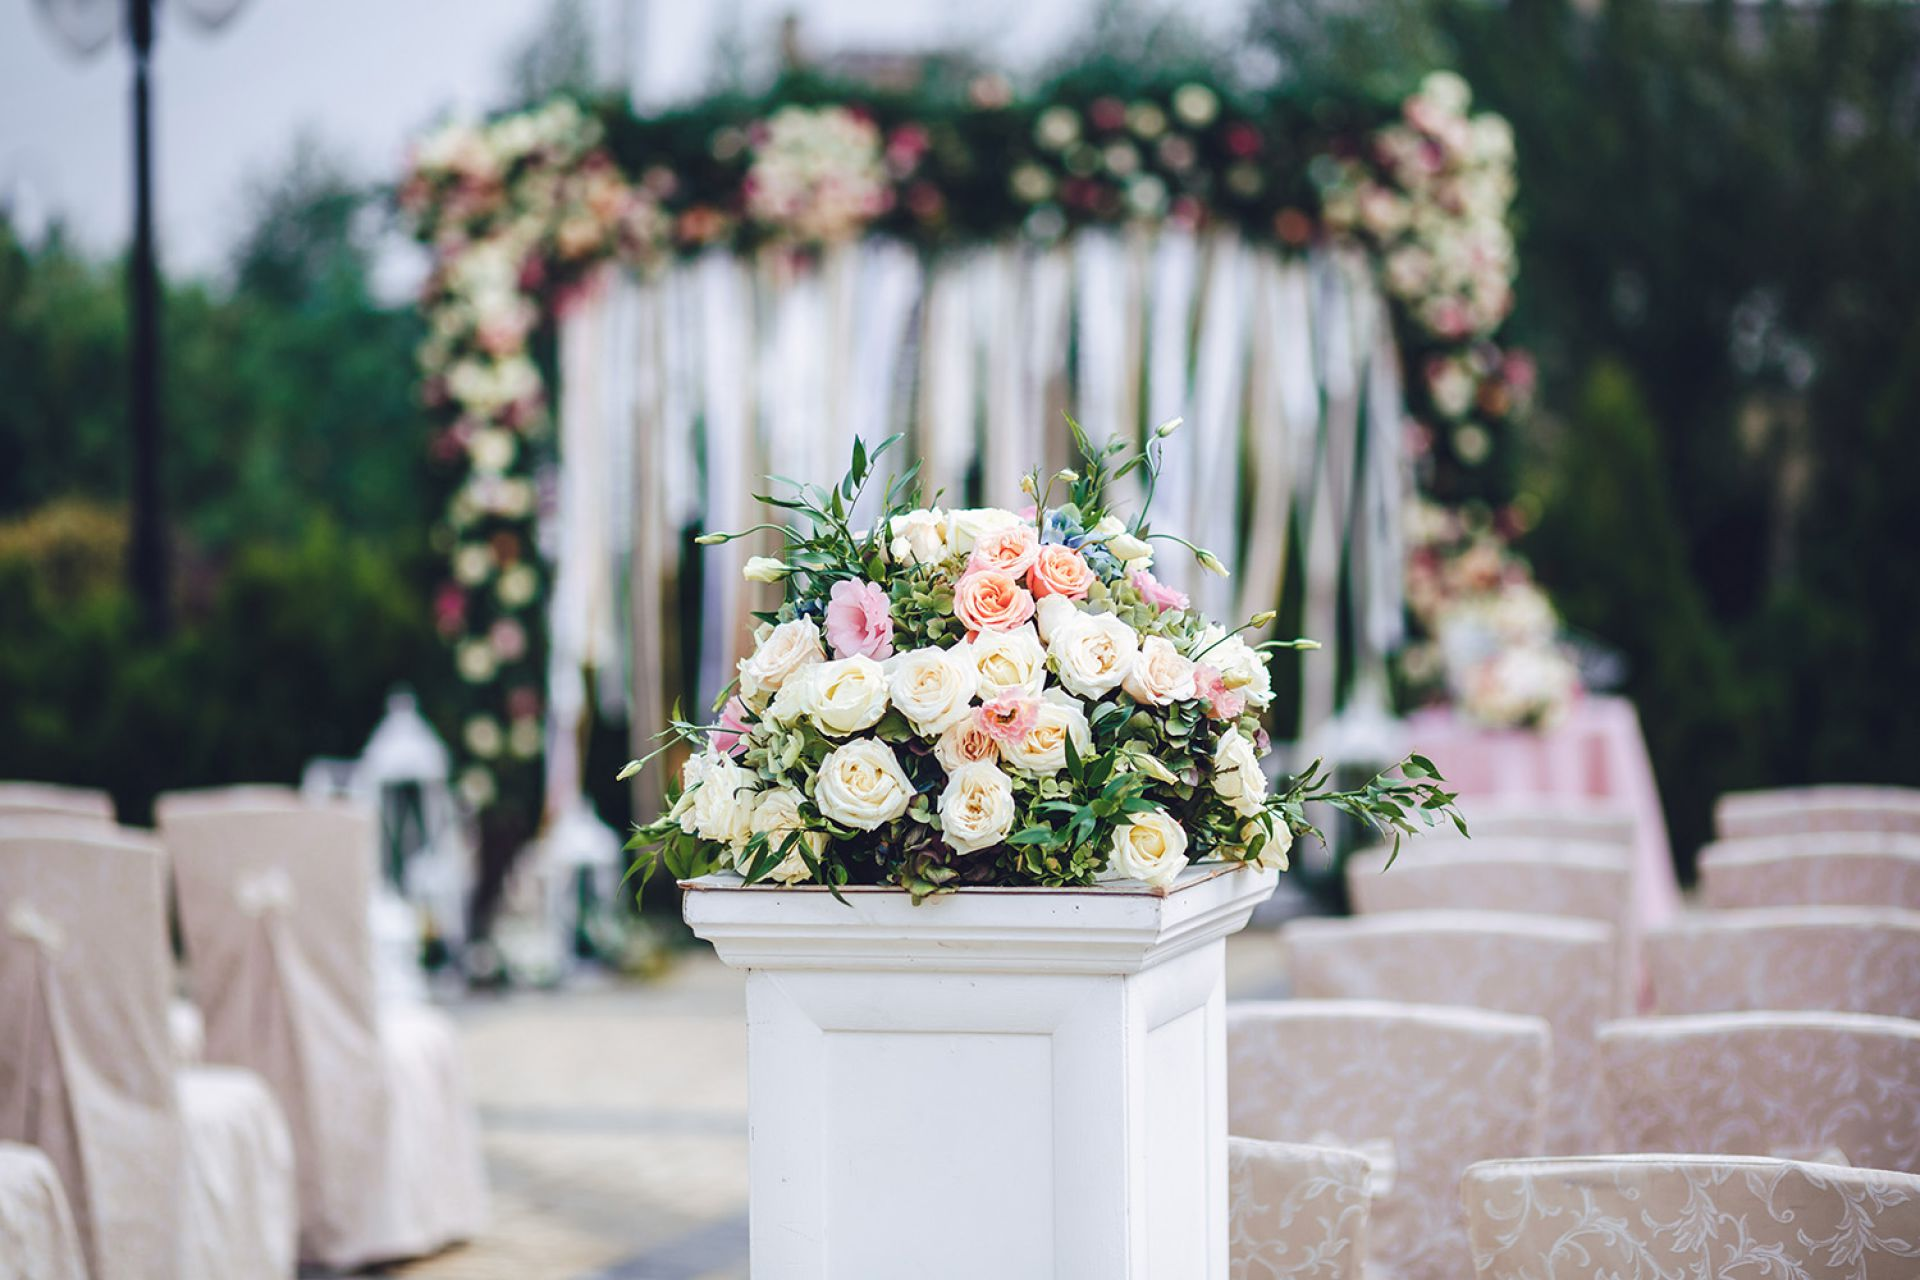 An image of ceremony decor with flowers